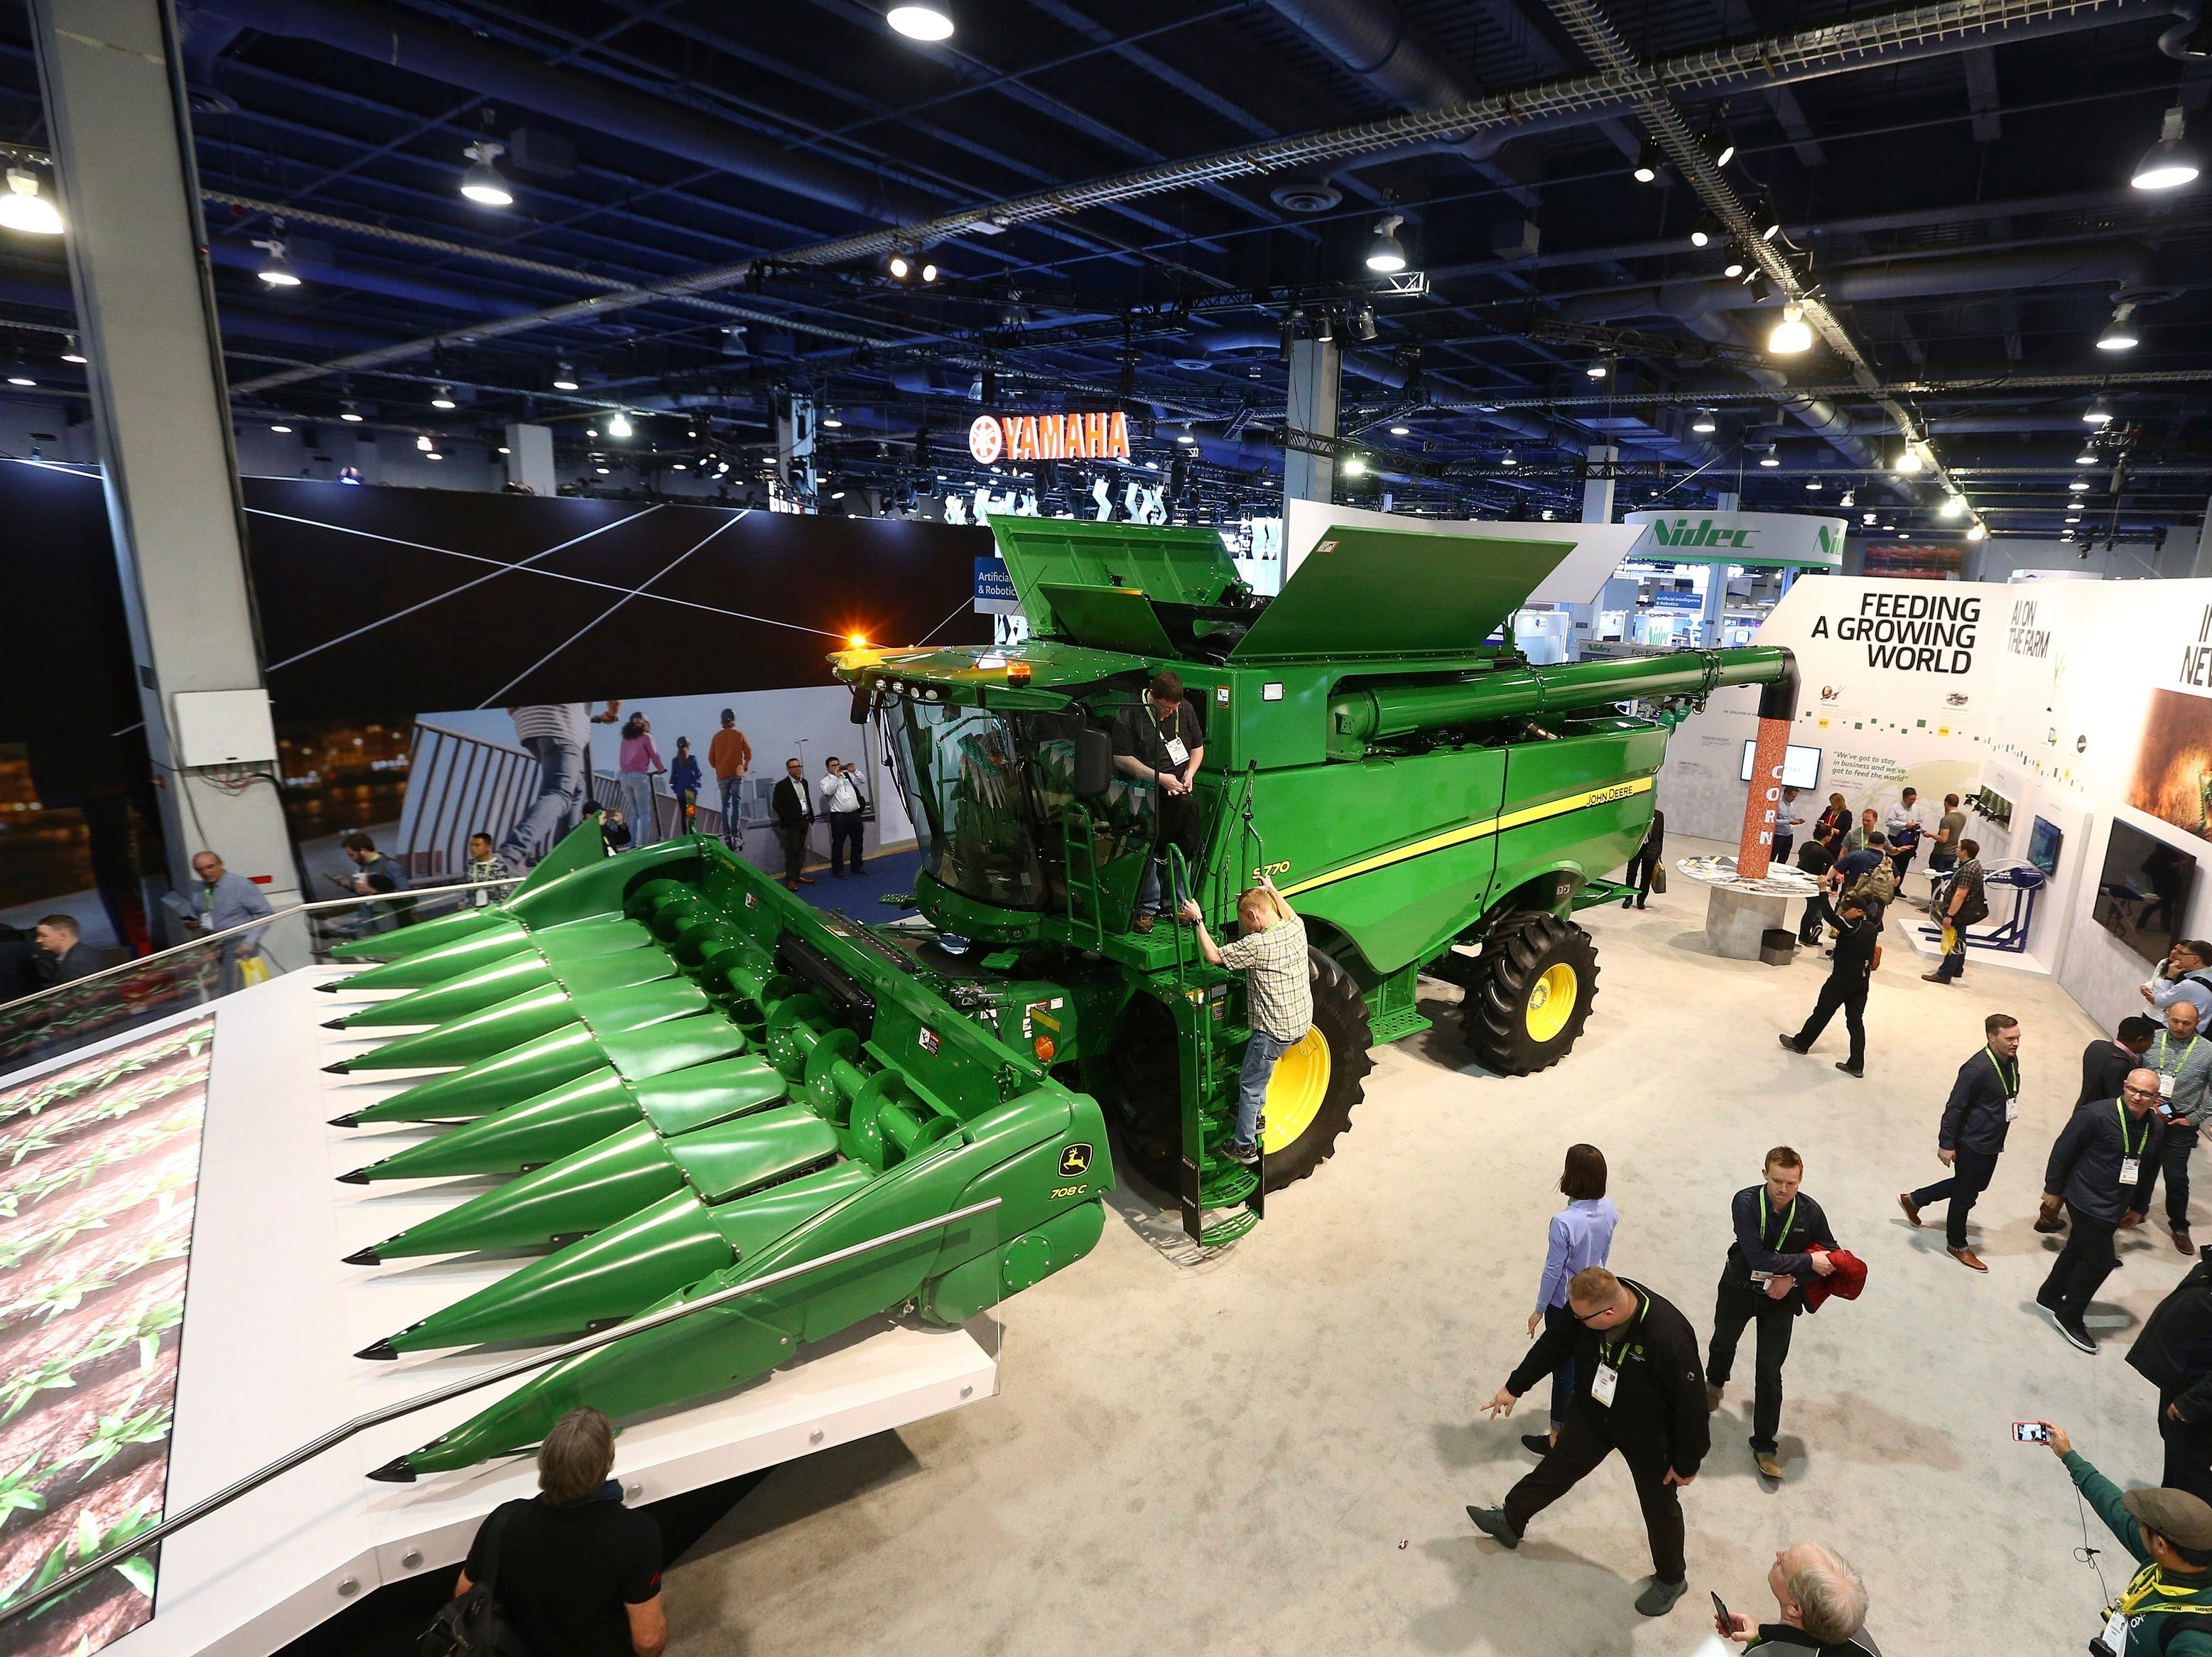 John Deere has hauled in a 20-ton combine harvester aided by artificial intelligence. The combine has cameras with computer-vision technology to track the quality of grain coming into the machine, so that its kernel-separating settings can be adjusted automatically. Farmers can monitor it remotely using a smartphone app. It was shown at CES International on Tuesday, Jan. 8, 2019, in Las Vegas.